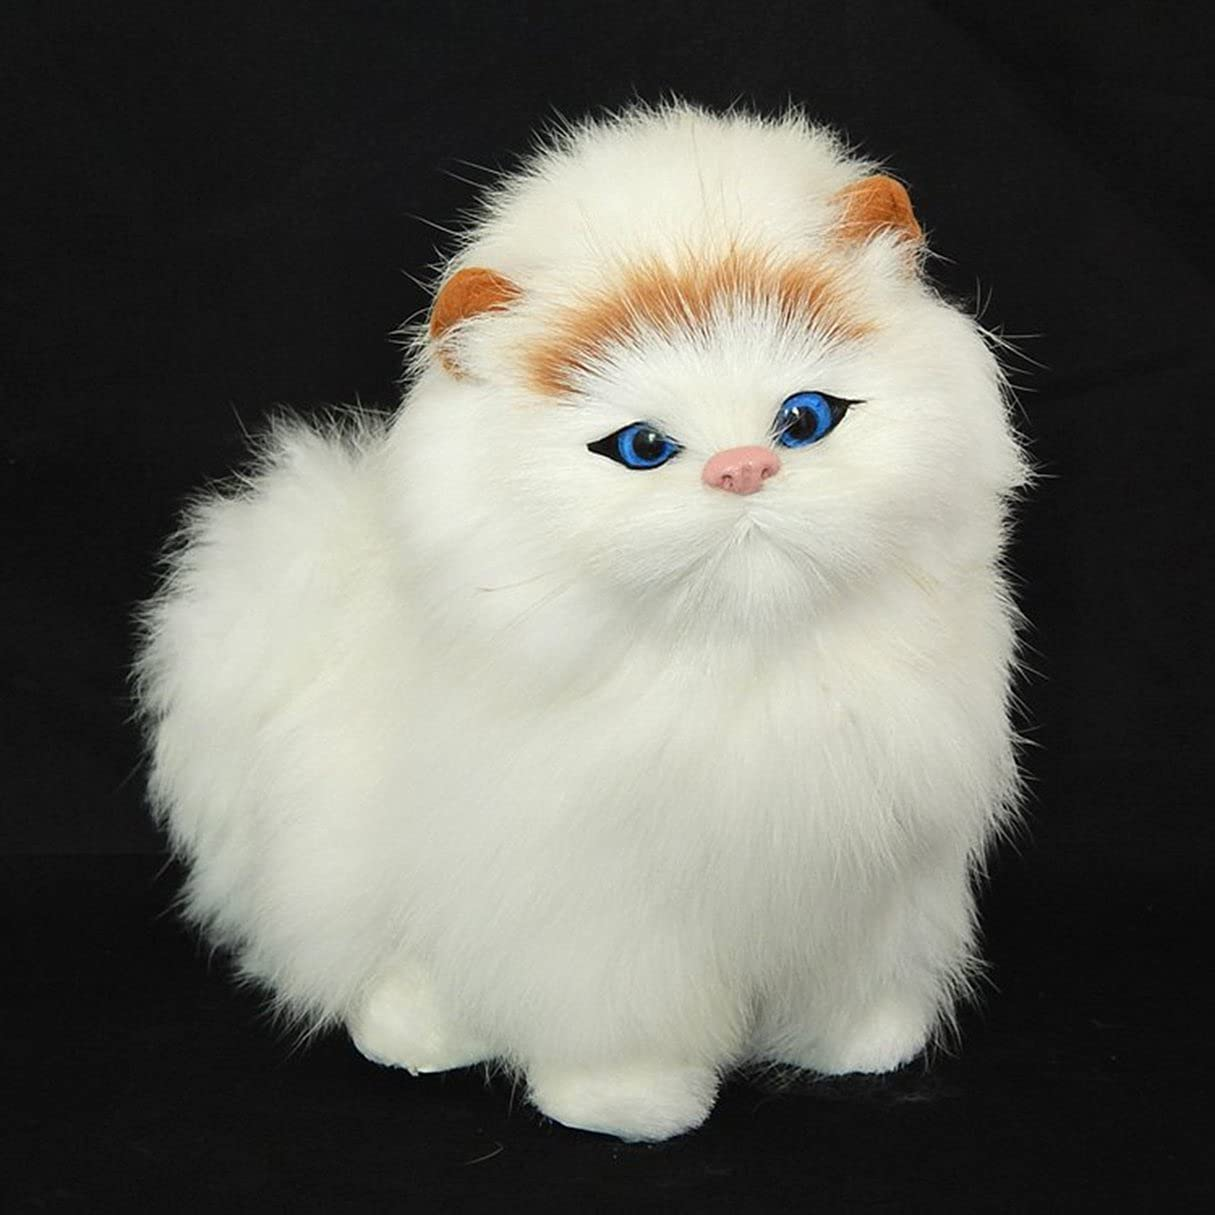 urjipstore 5 Colors Electronic Max 47% OFF Pets Simulation Dolls Cats Gifts Animal